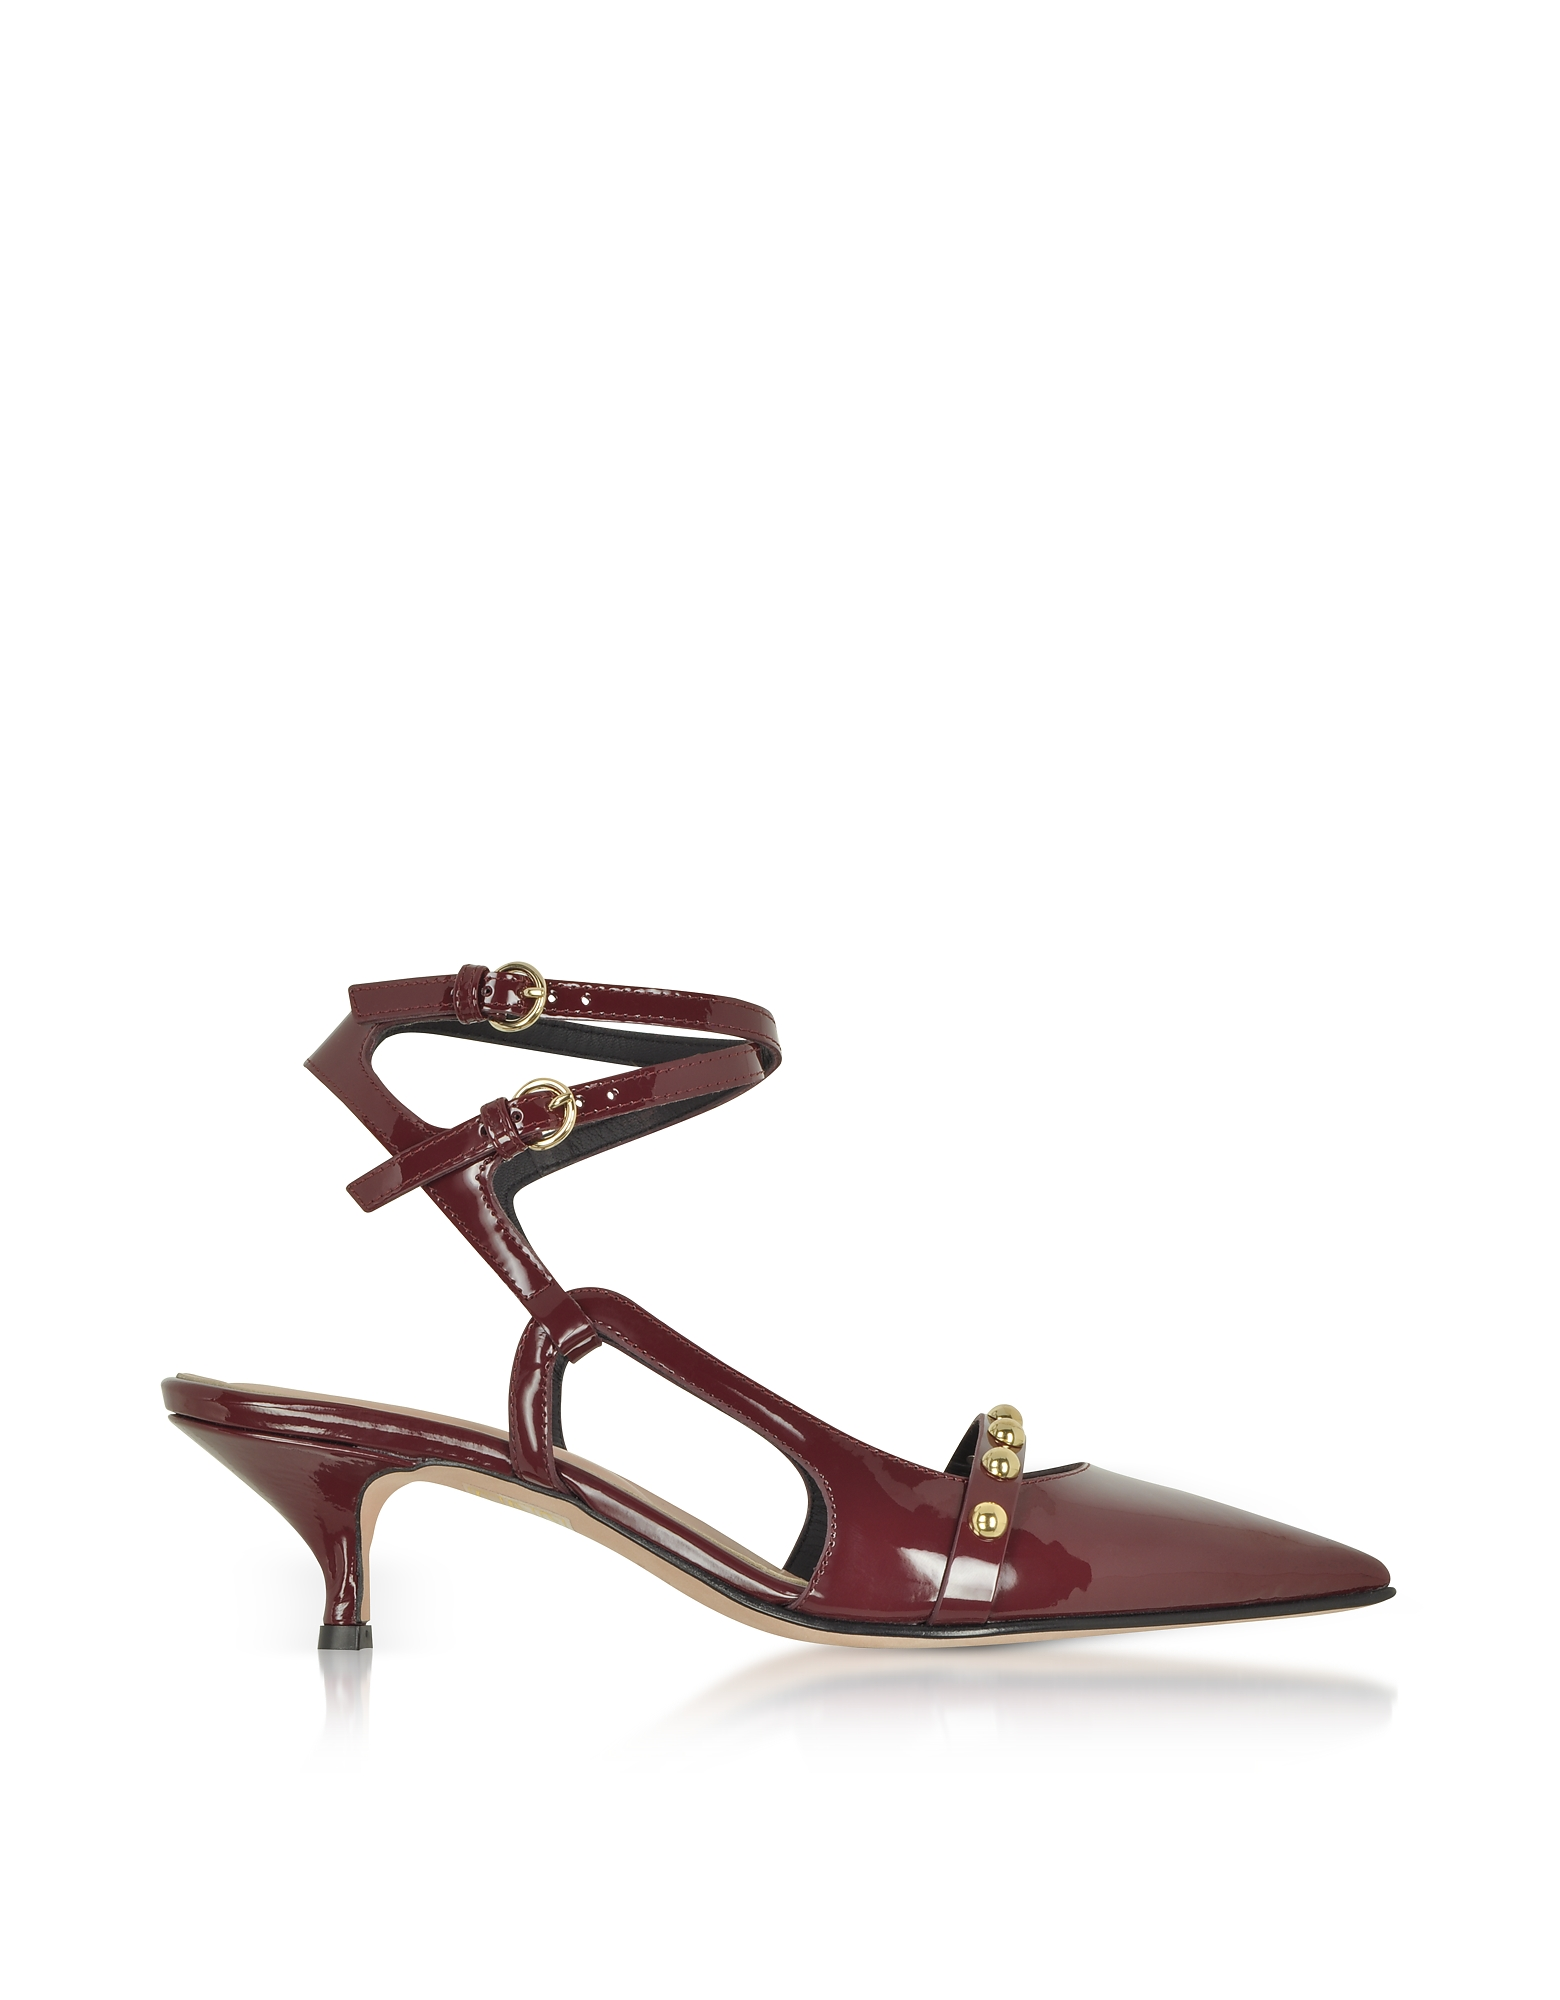 RED Valentino Shoes, Wine Leather Mid-Heel Pumps